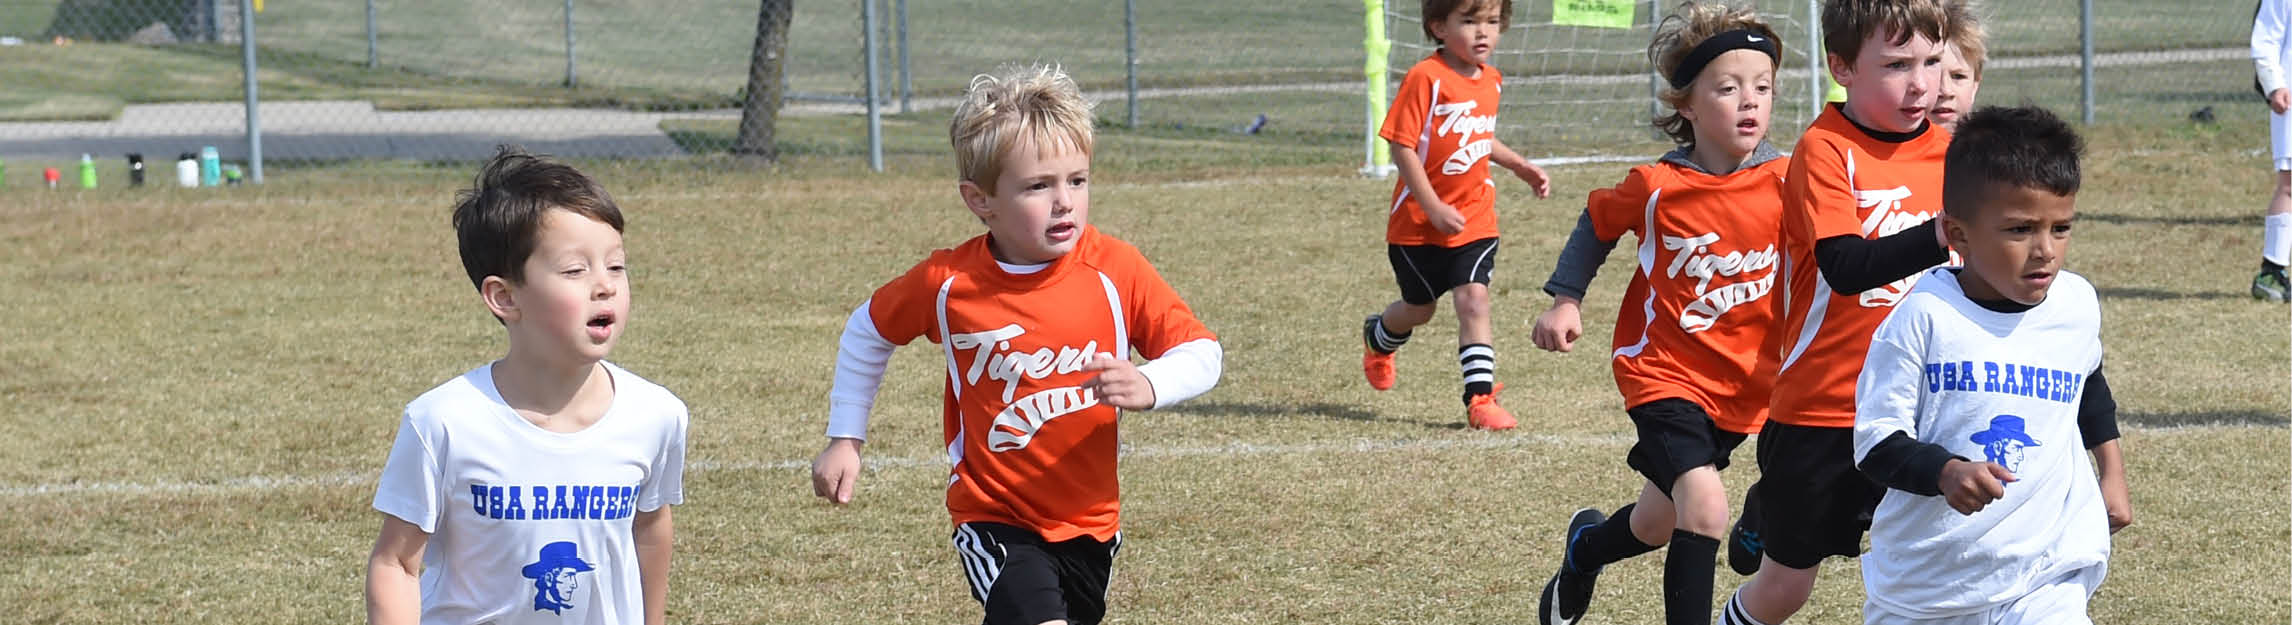 Male soccer players in white and orange jerseys running down the field